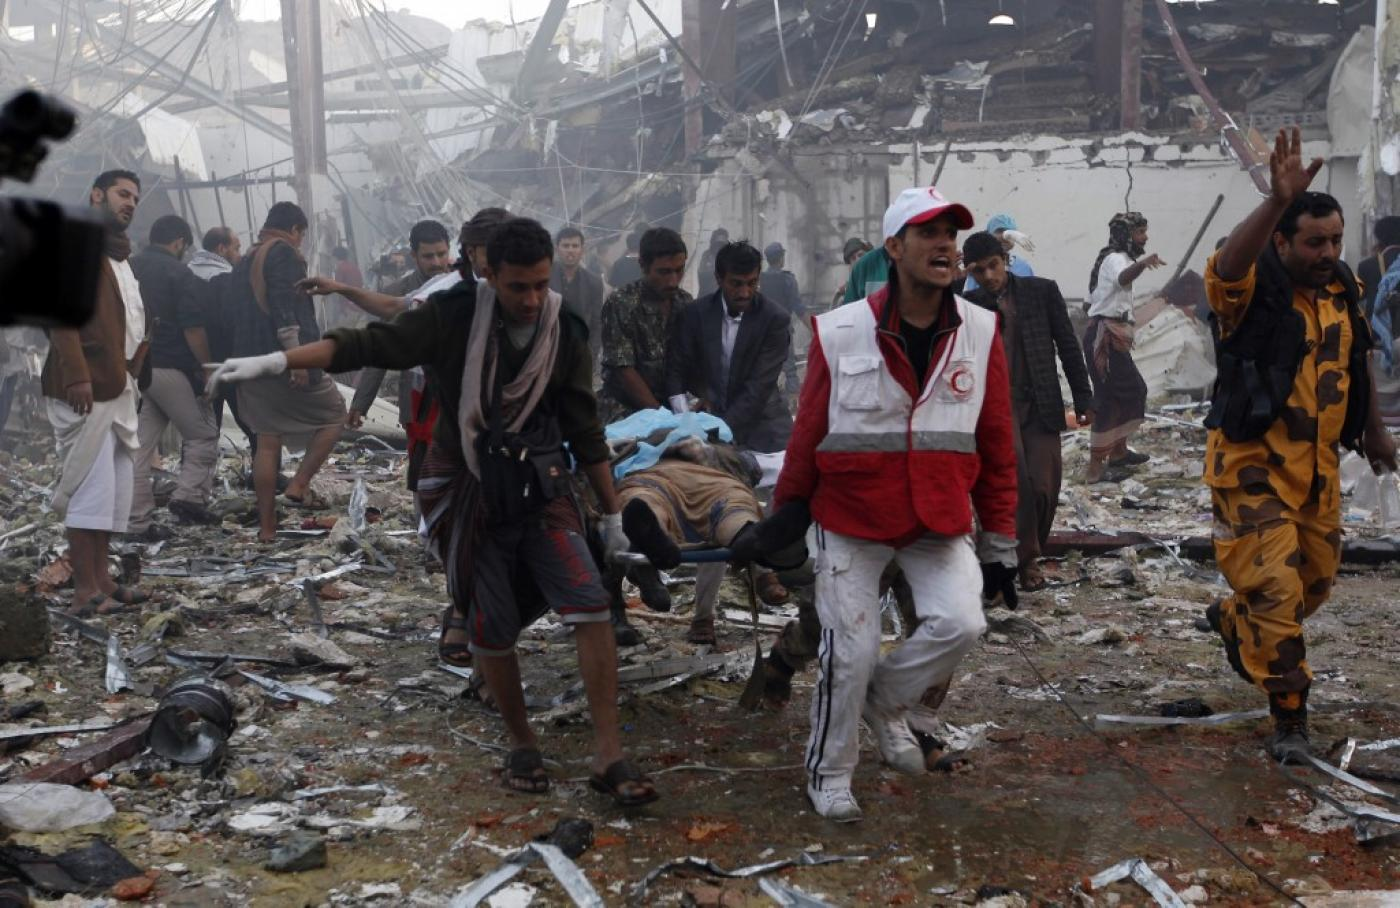 Lawyers ask US and UK police to investigate Saudi Arabia for Yemen war crimes